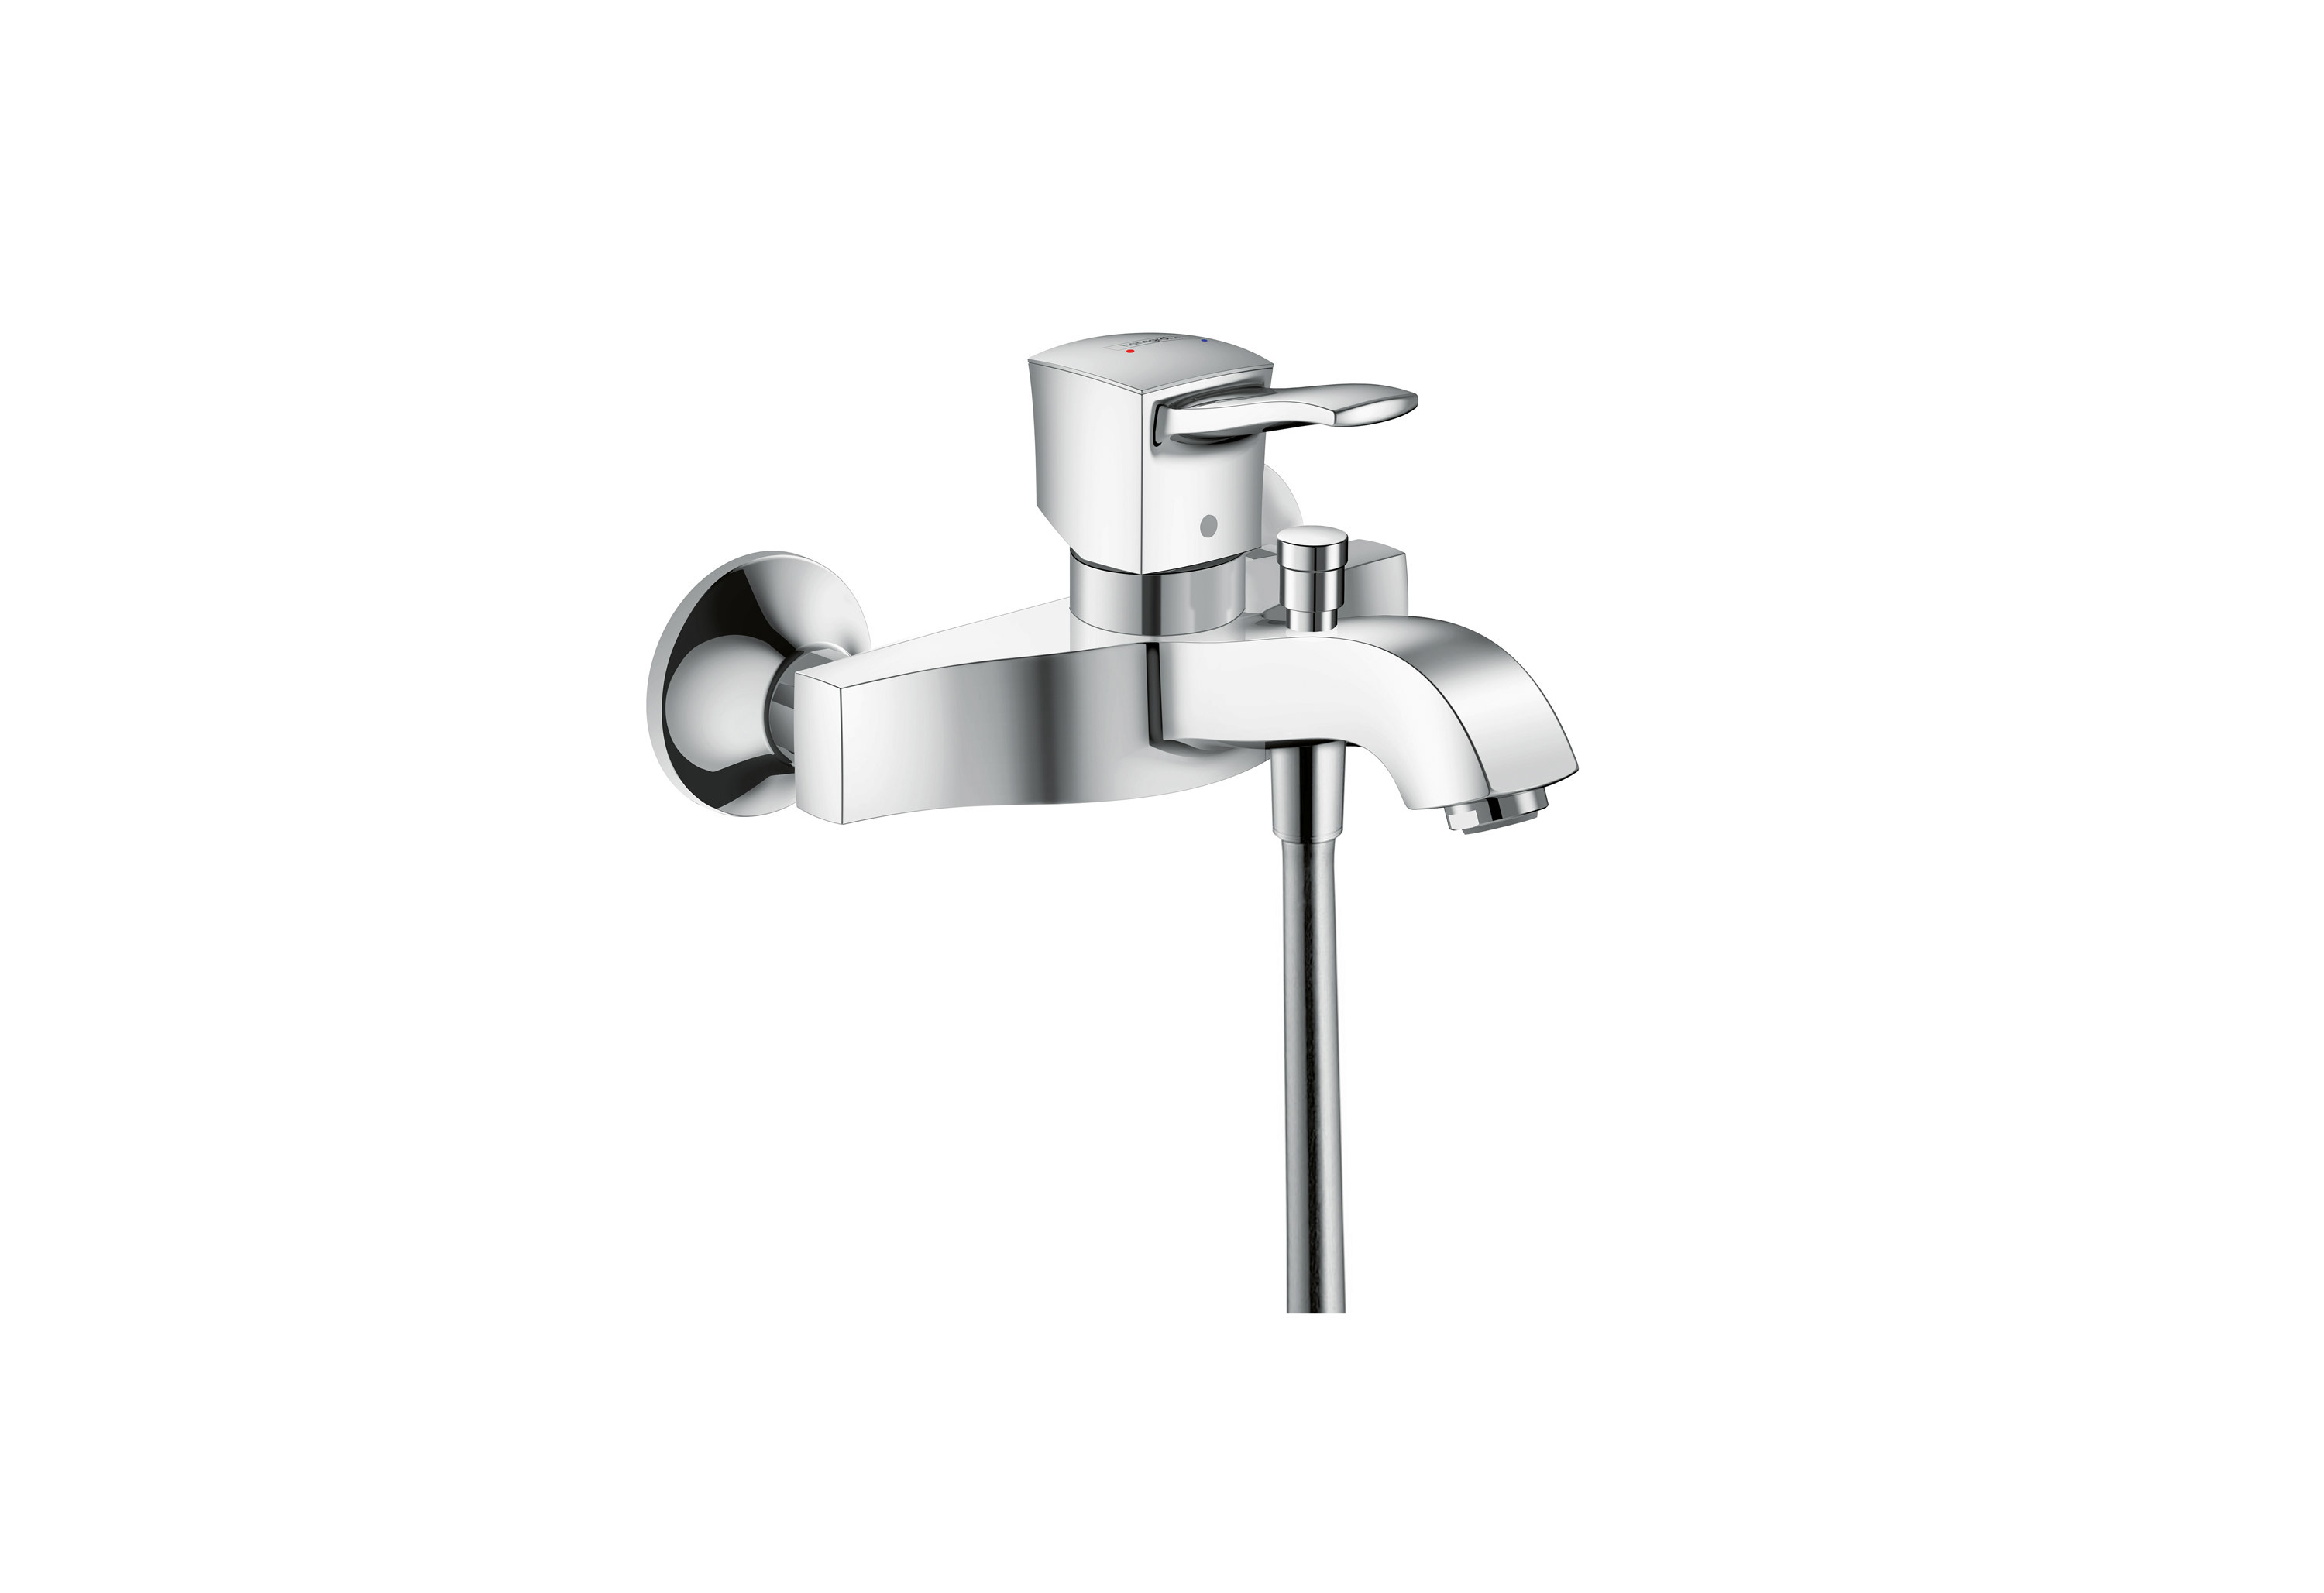 Metropol Classic bath mixer exposed by Hansgrohe | STYLEPARK